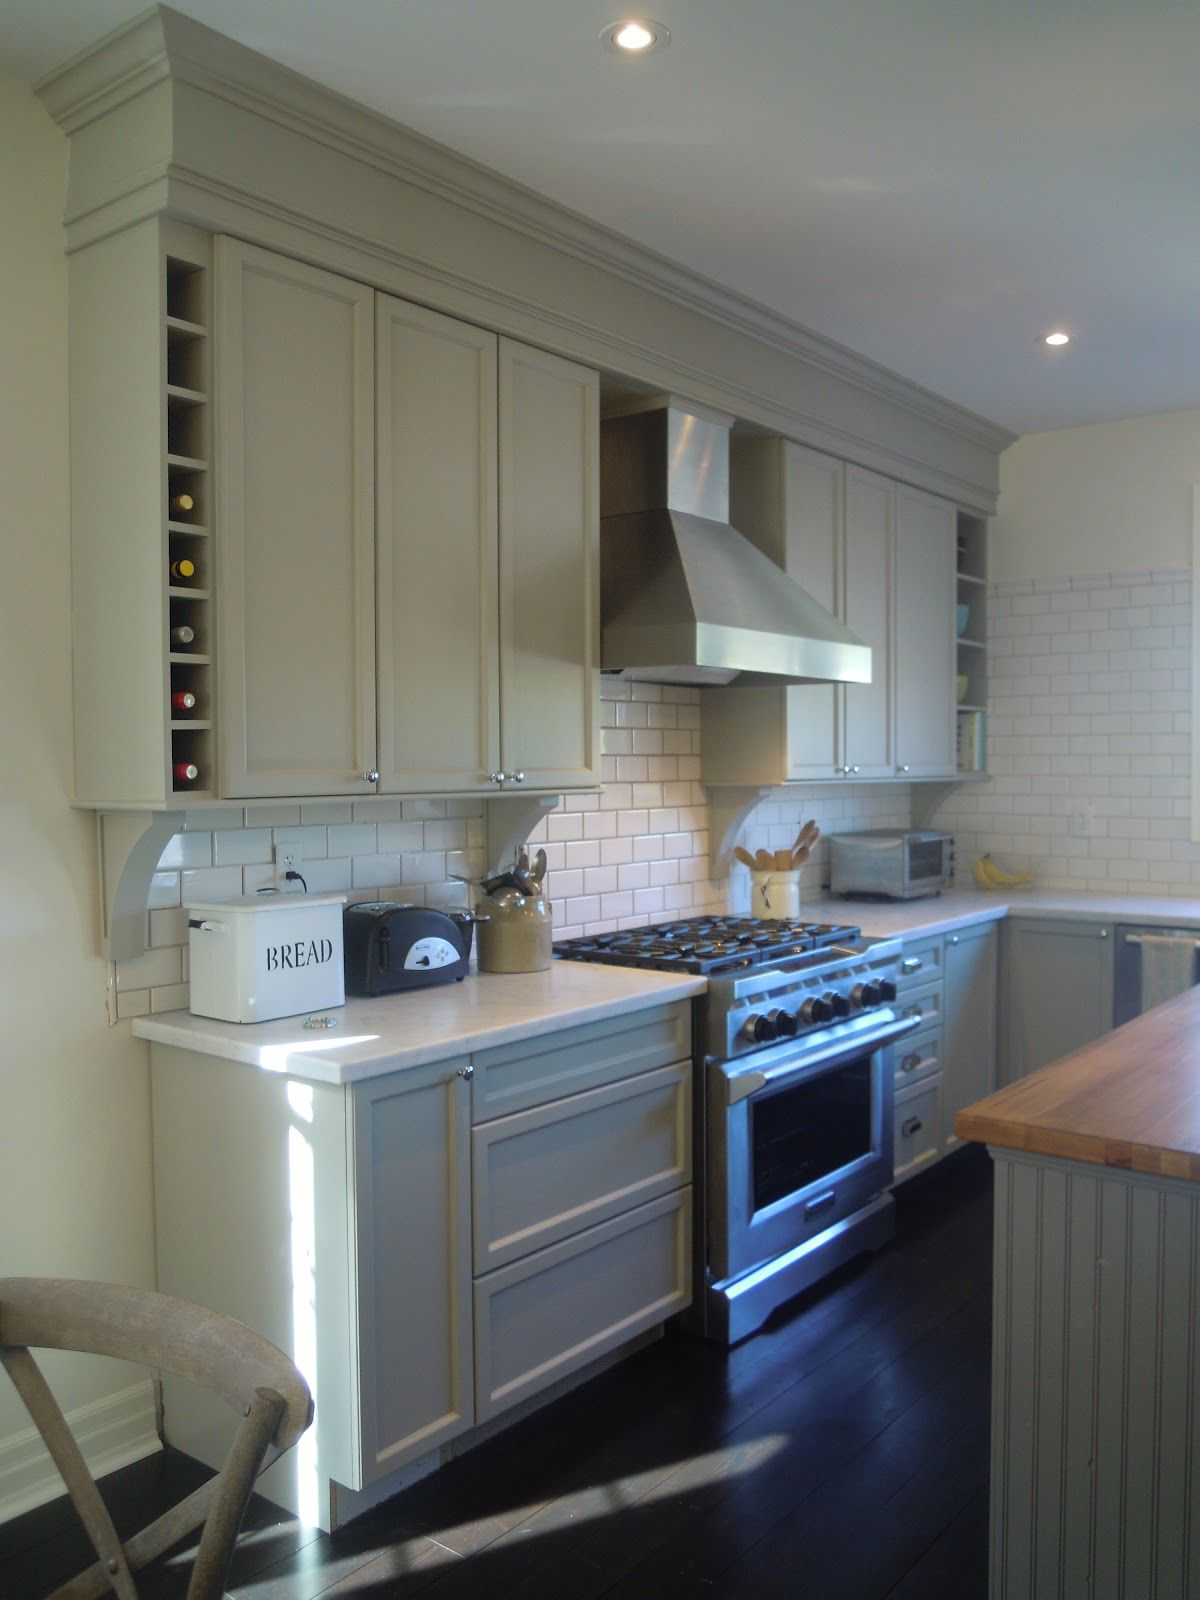 Kitchen Crown Moulding Ideas: Crown Moulding Above Kitchen Cabinets To